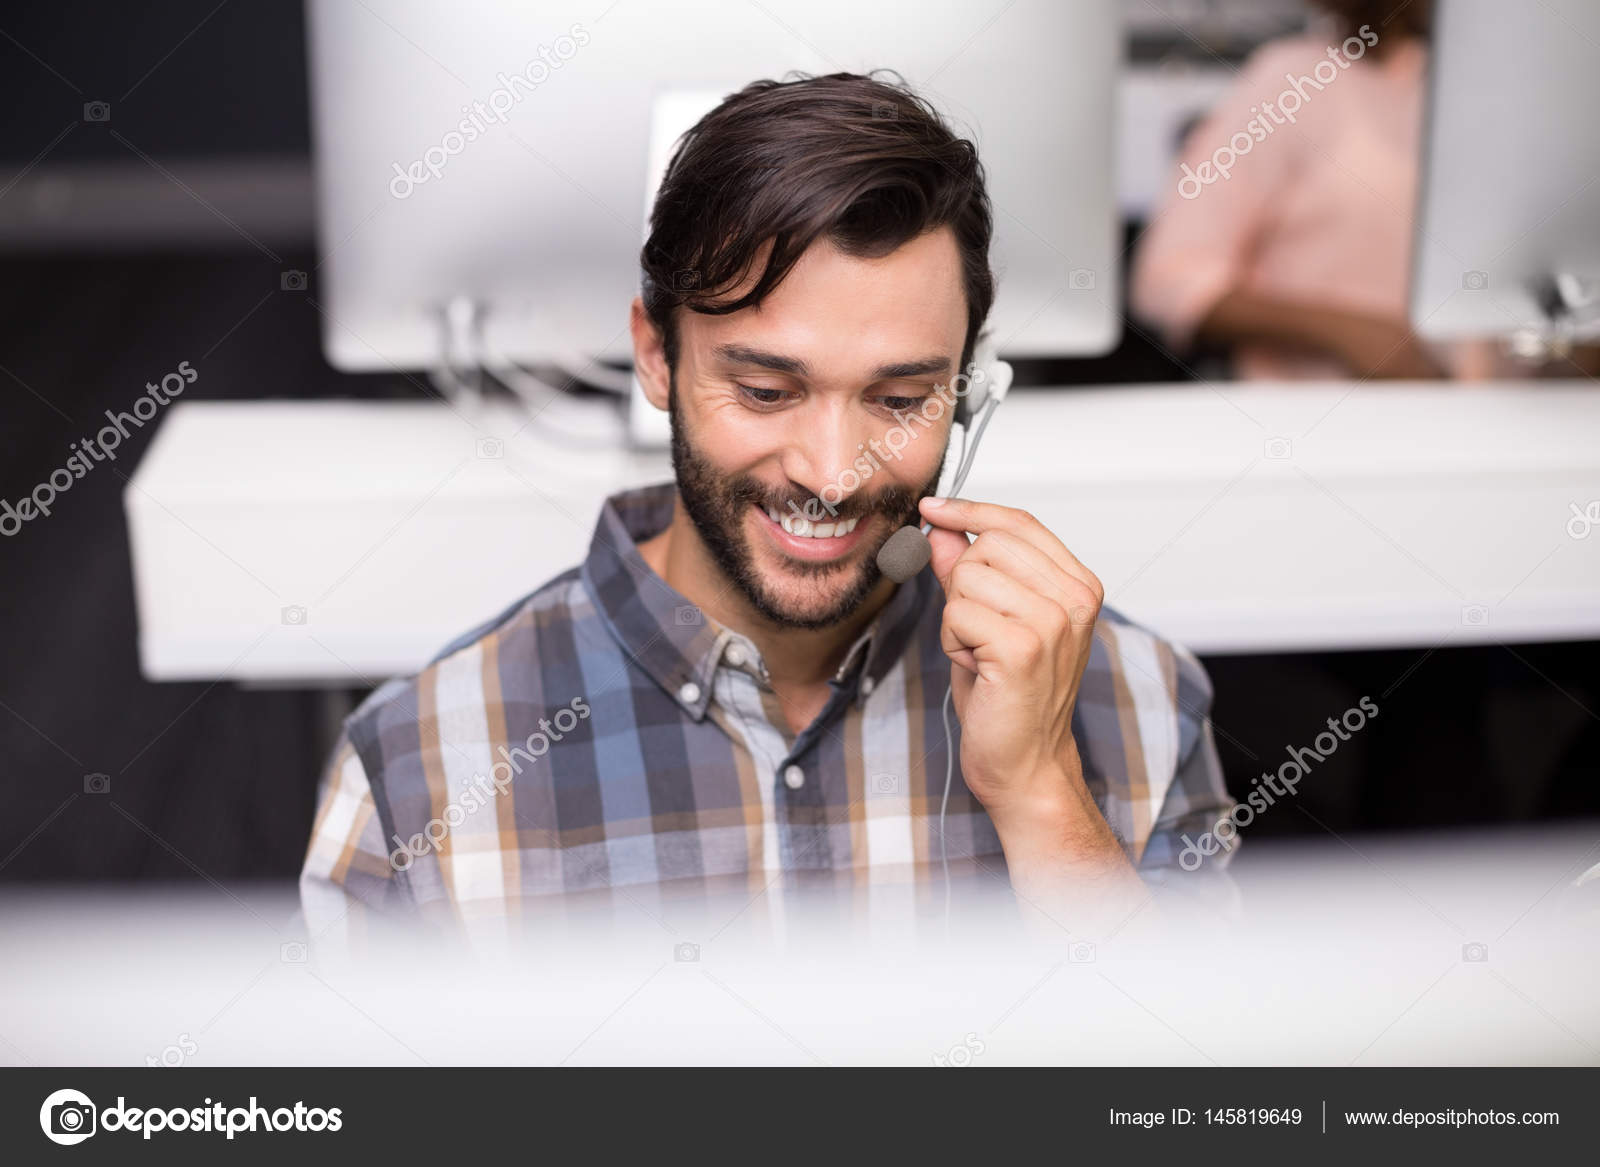 Smiling Male Customer Service Executive Talking On Headset